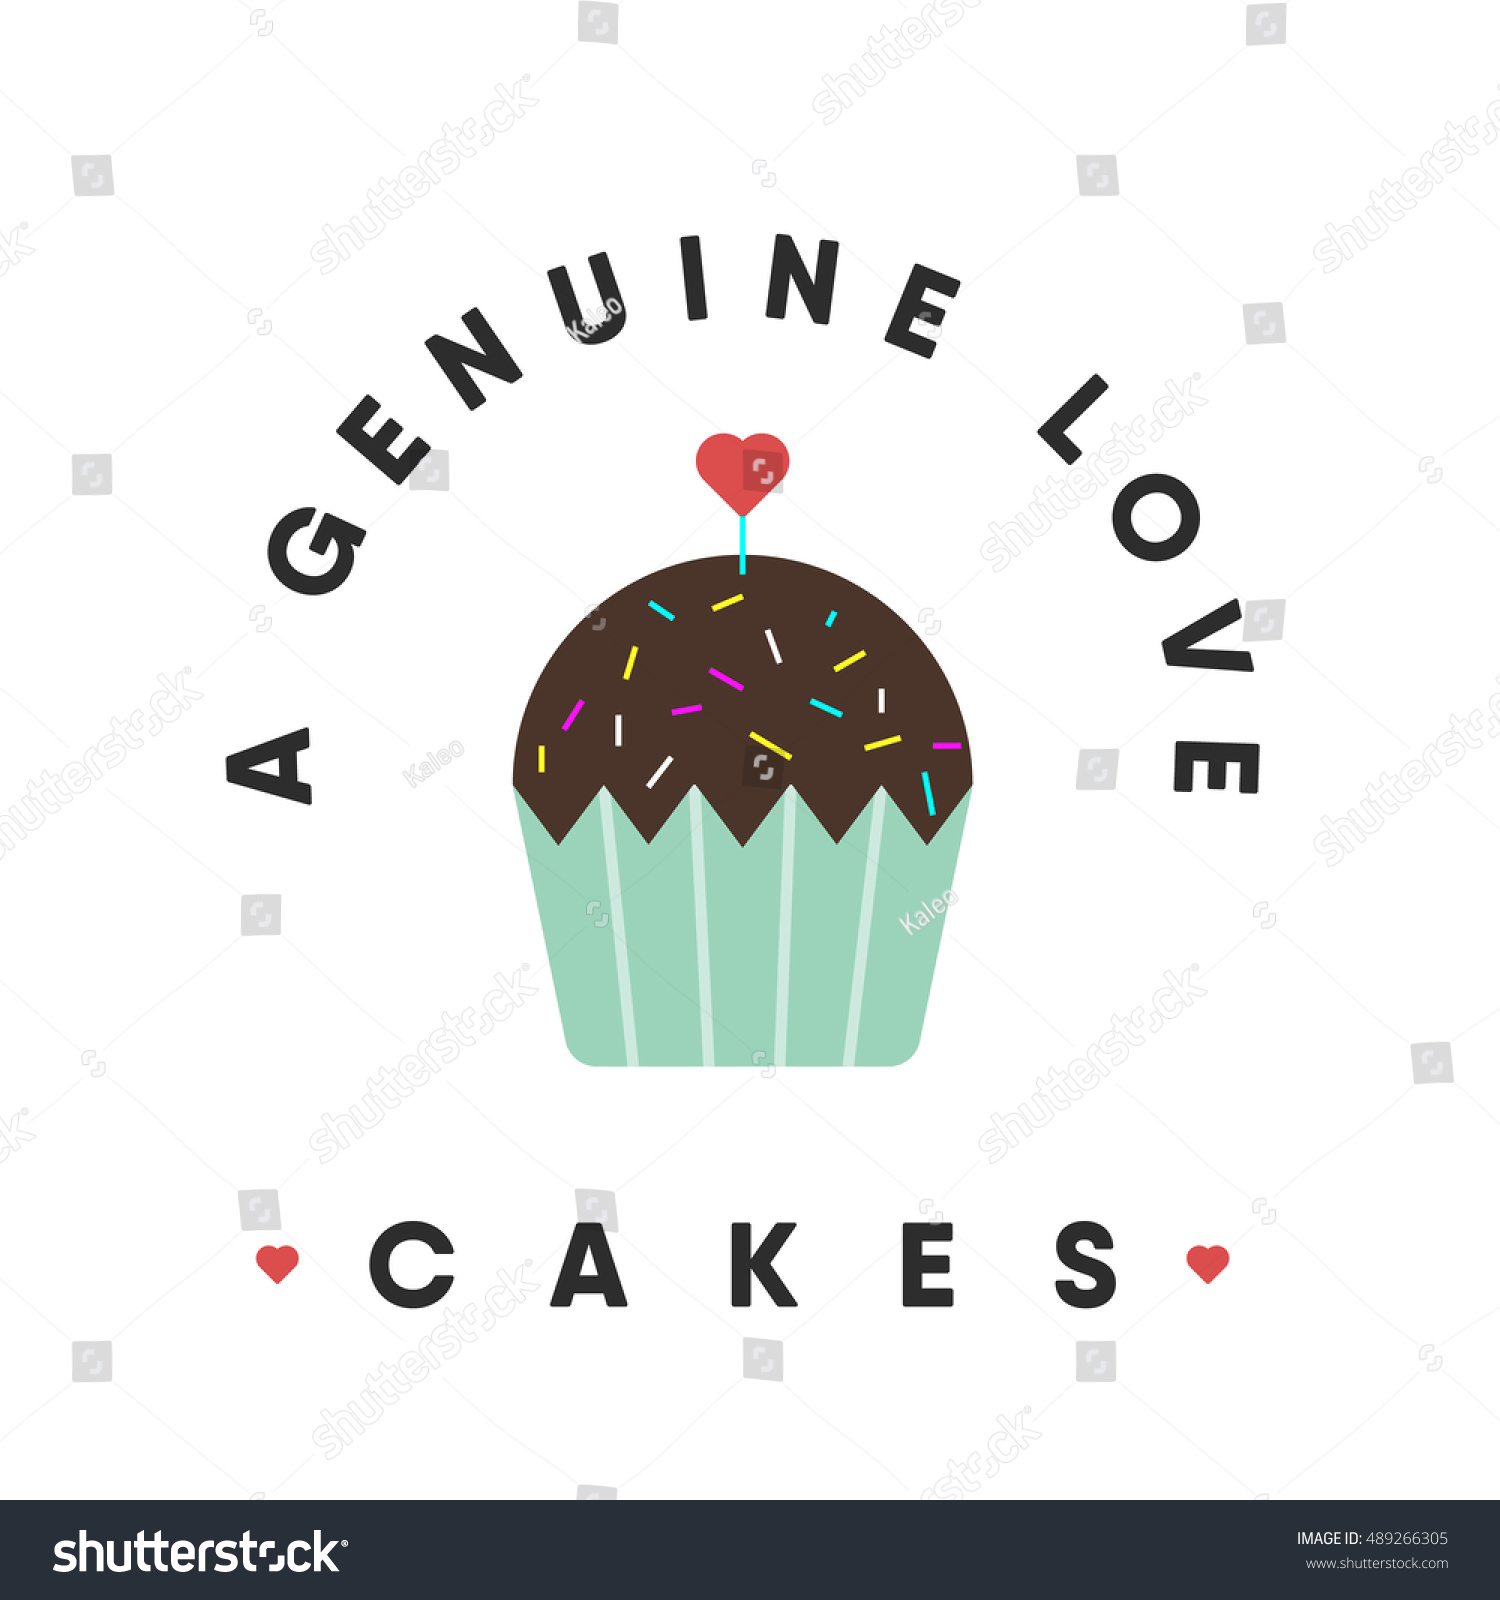 Cake Love Is A Genuine Cupcake Icon Concept With Heart Vector Illustration